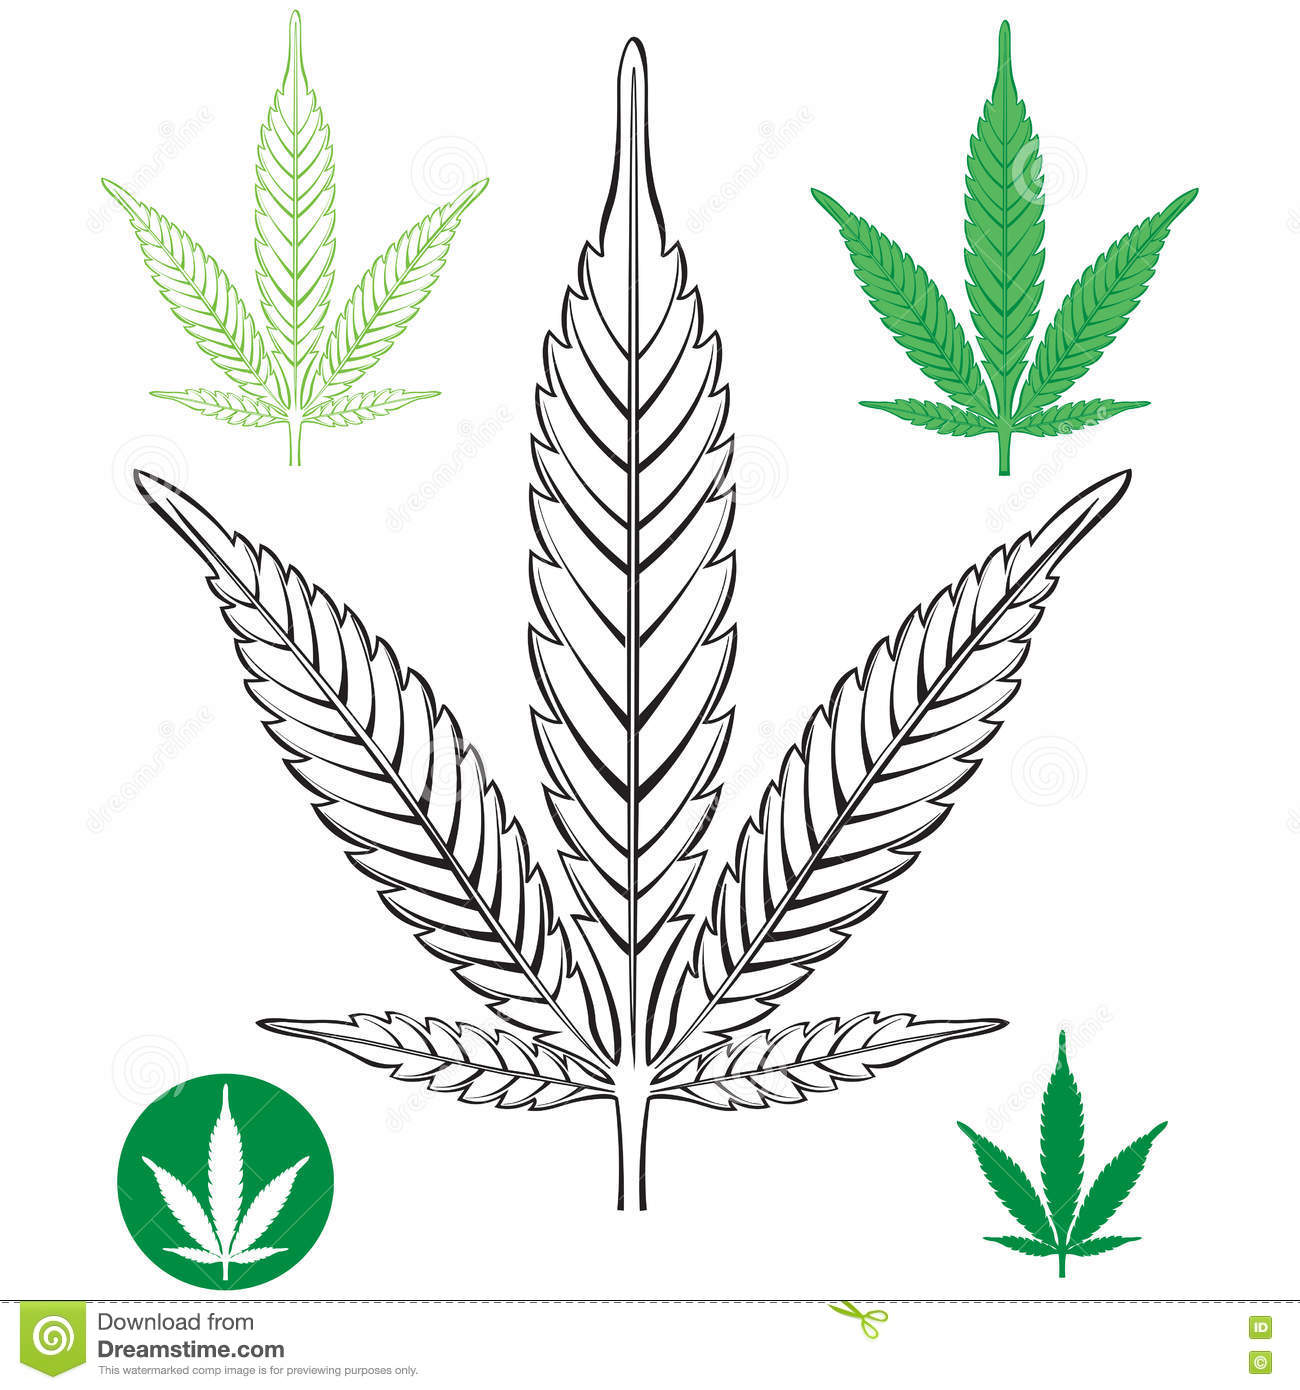 cannabis outline Marijuana use disorders appear to be very similar to other substance use disorders, although the long-term clinical outcomes may be less severe.